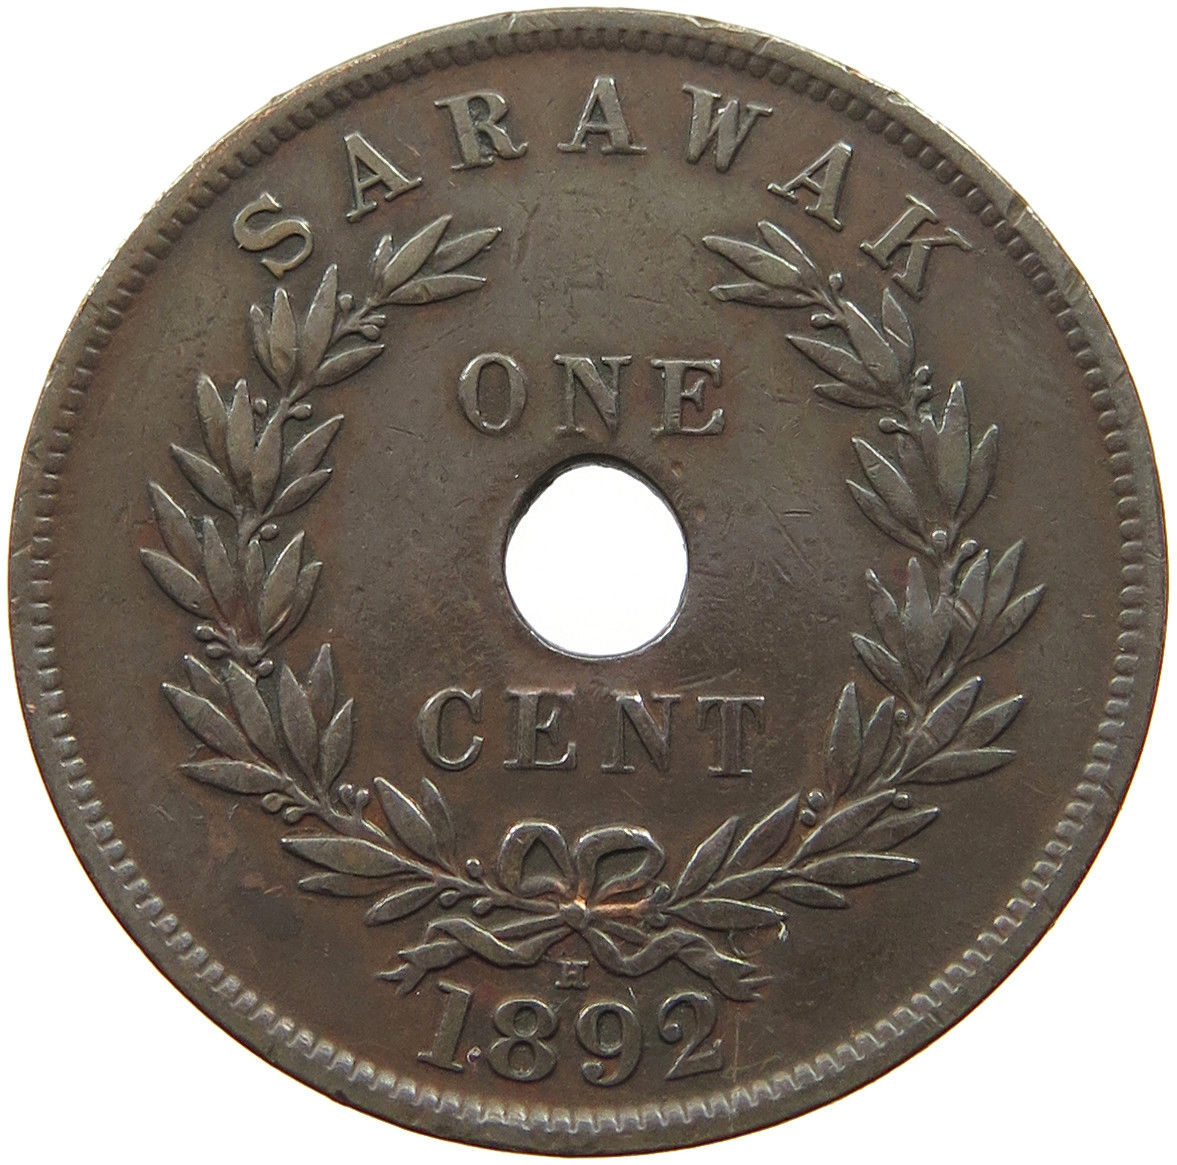 One Cent: Photo Sarawak Cent 1892